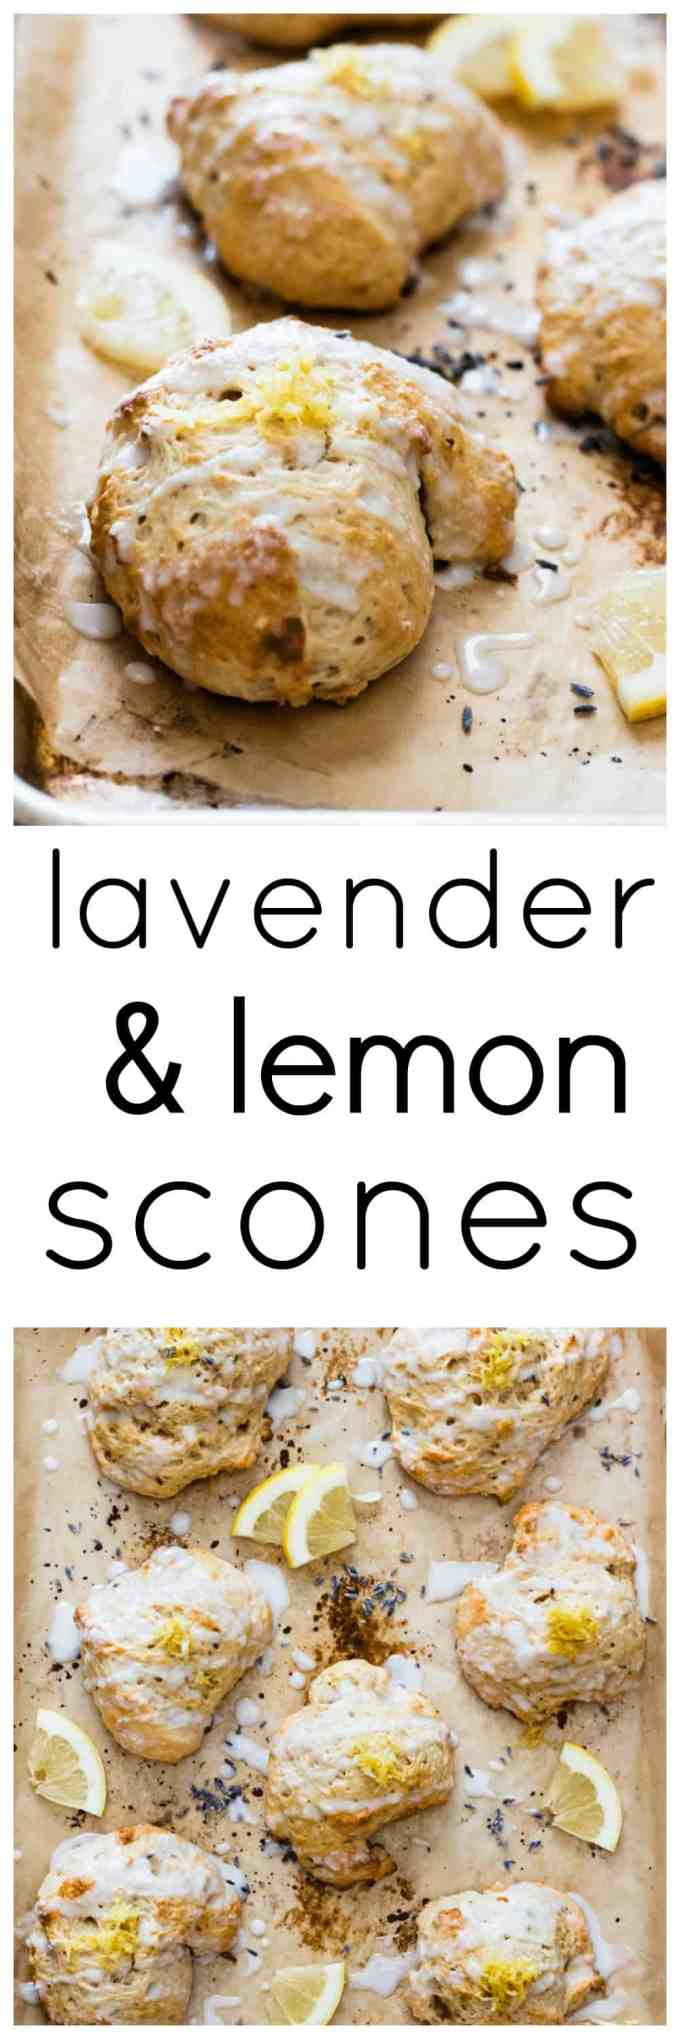 Fresh, citrusy, light and fluffy, these lemon scones just scream spring and are absolute perfection when paired with a hot cup of tea.